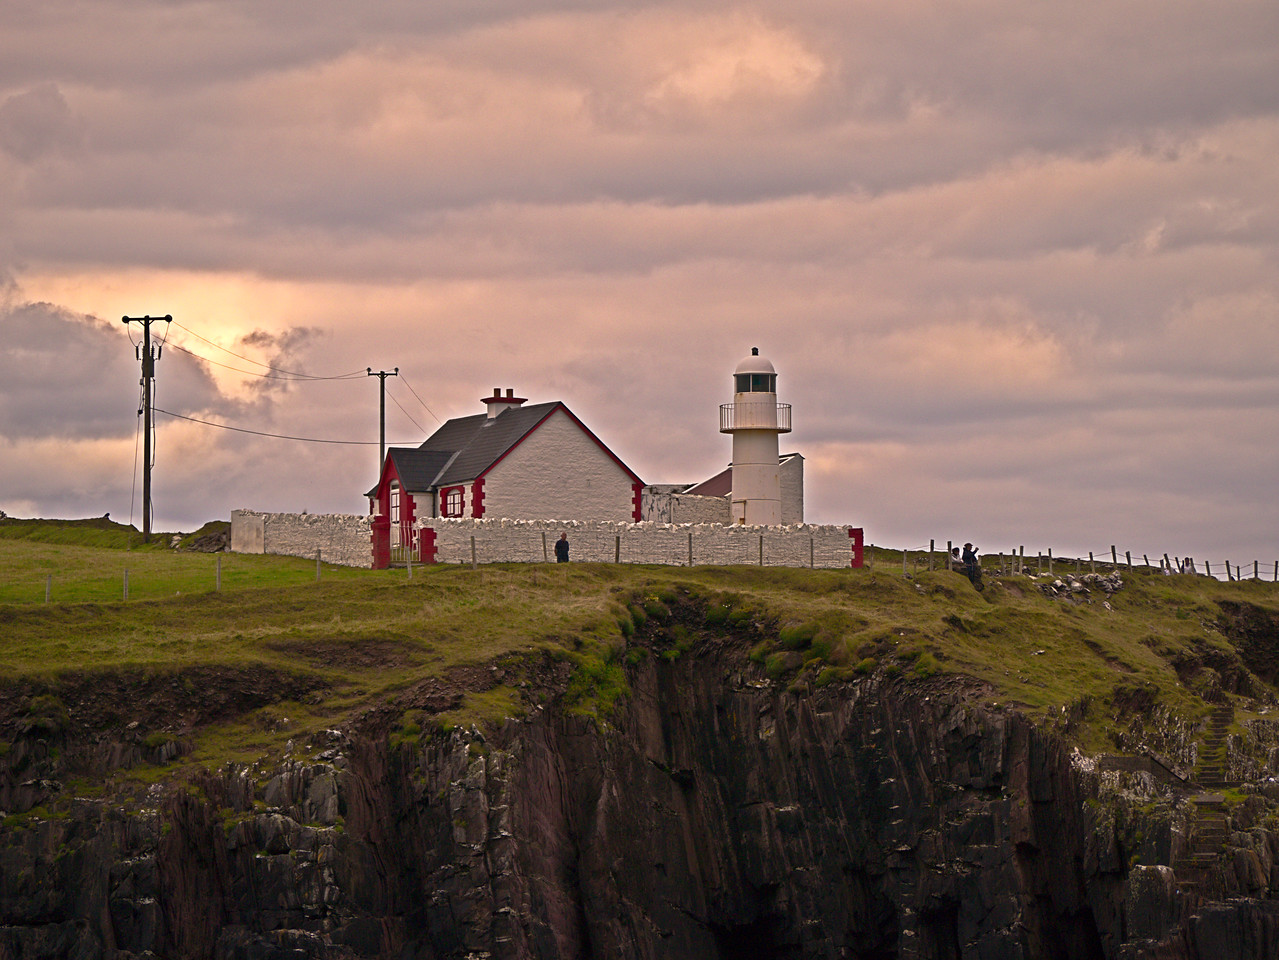 06/09/2011 'The Lighthouse'